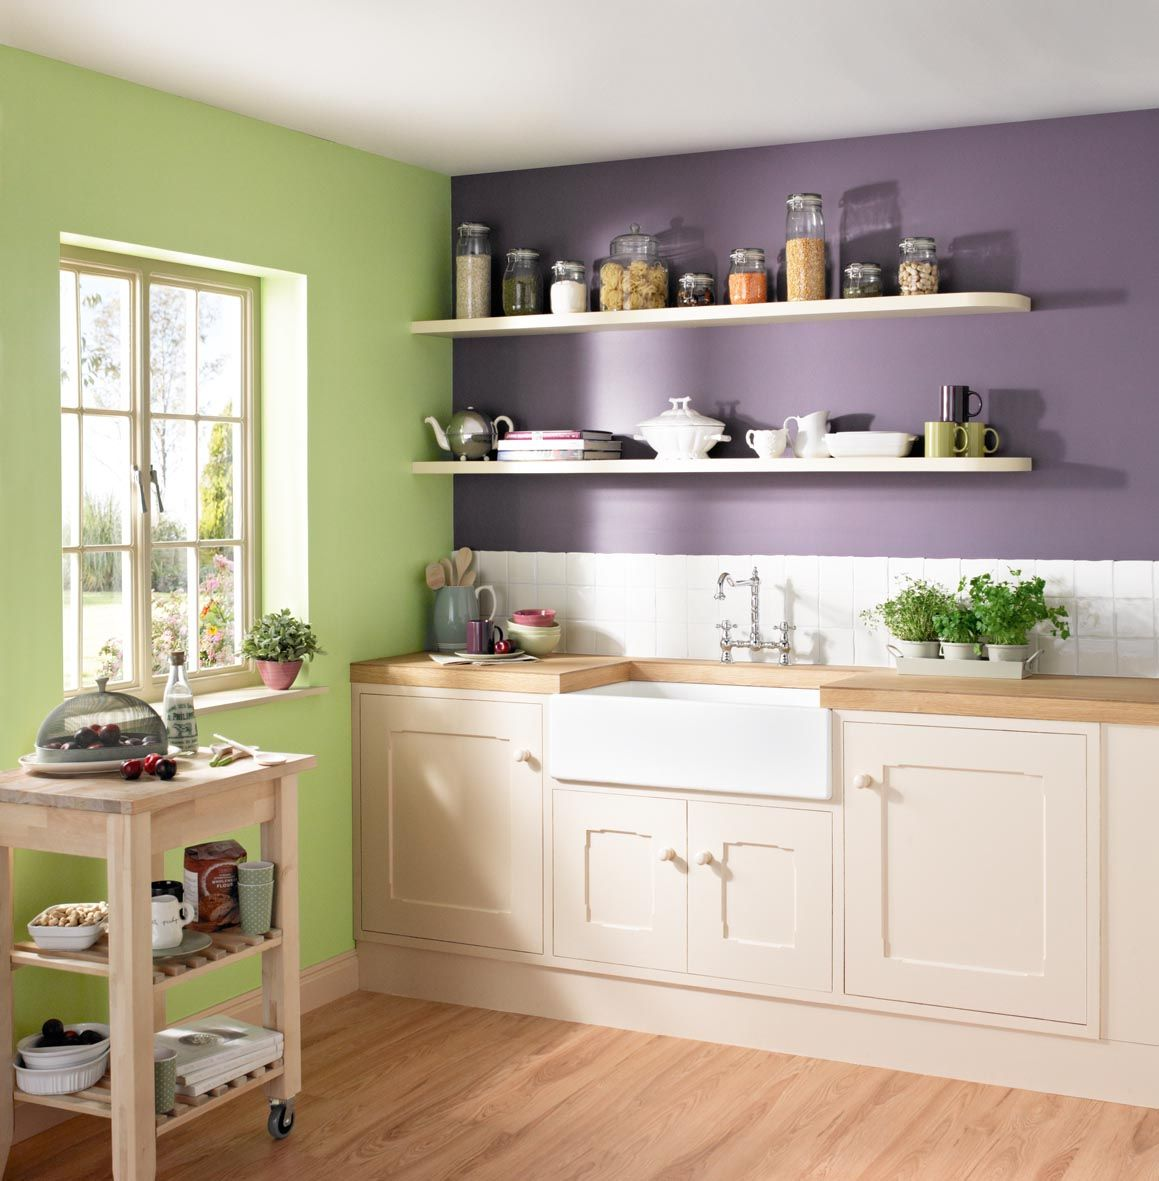 32 Painted Kitchen Wall Designs: Crown Kitchen & Bathroom Paint In Olive Press (green) And